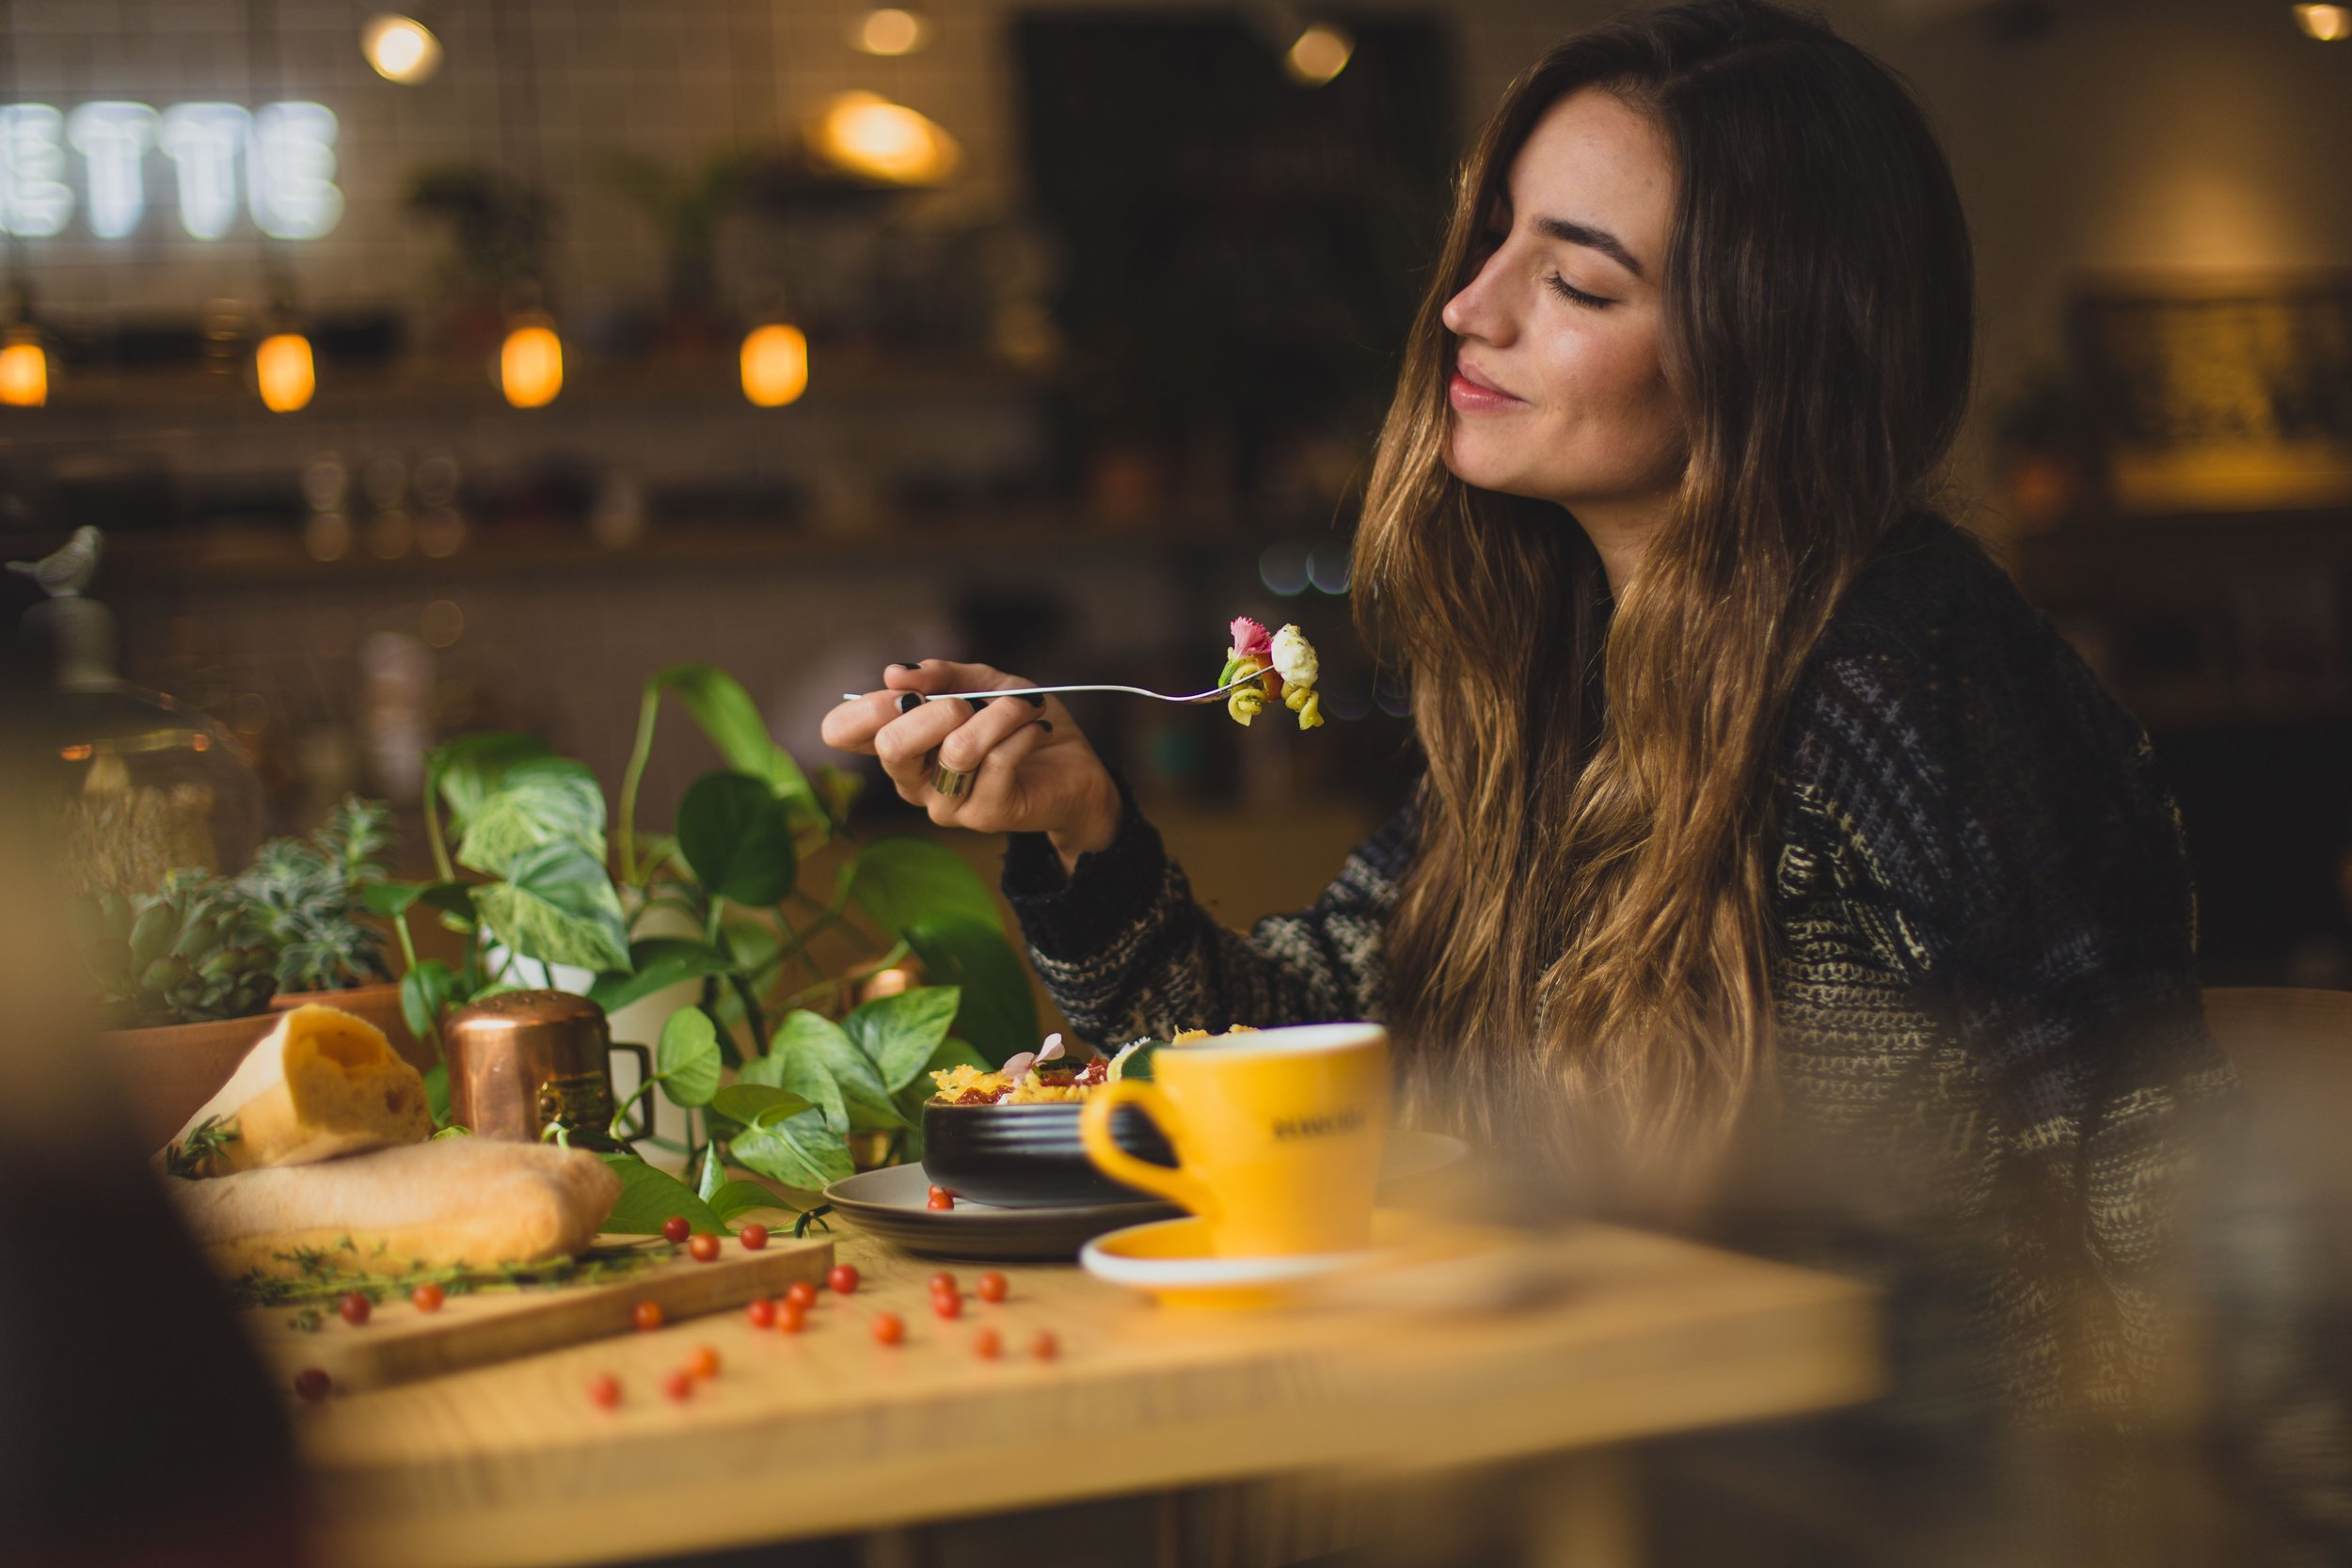 If you're gonna eat it, you might as well enjoy it! Sit down and really revel in the food experience! You'll eat less because you'll experience true food satisfaction!